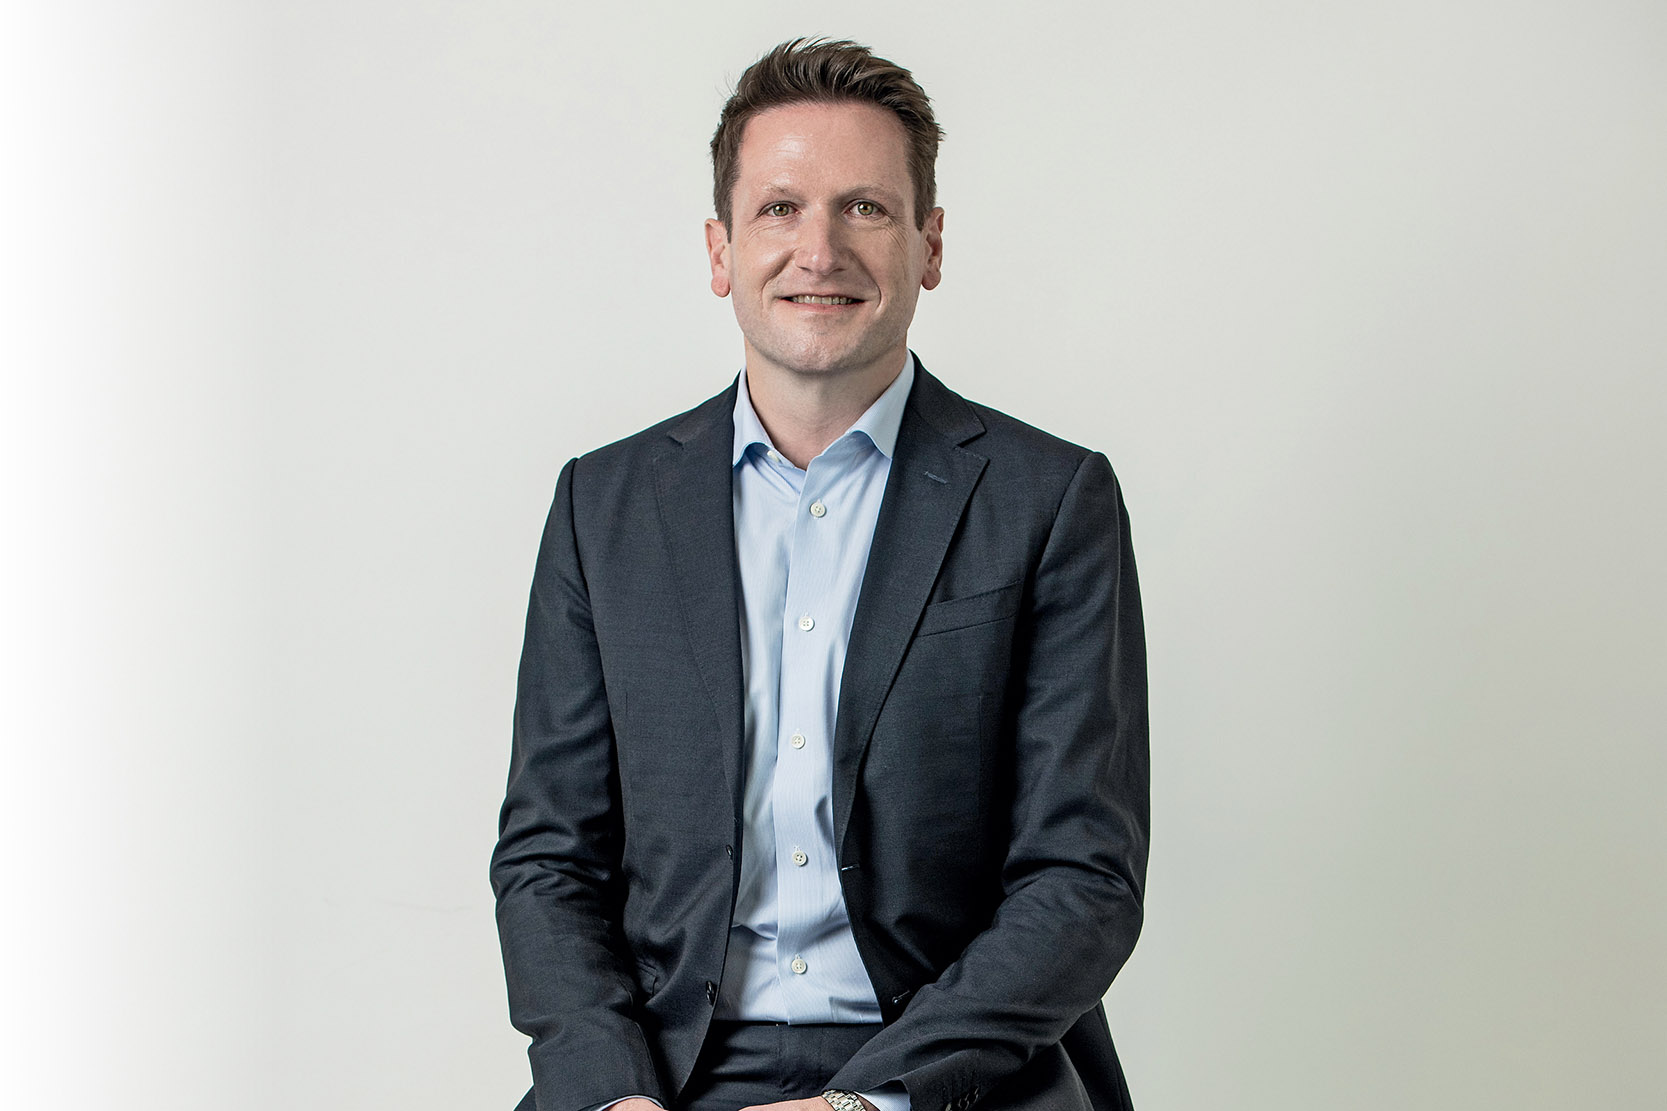 Francis Van Parys, Vice President Commercial of Cytiva Asia–Pacific